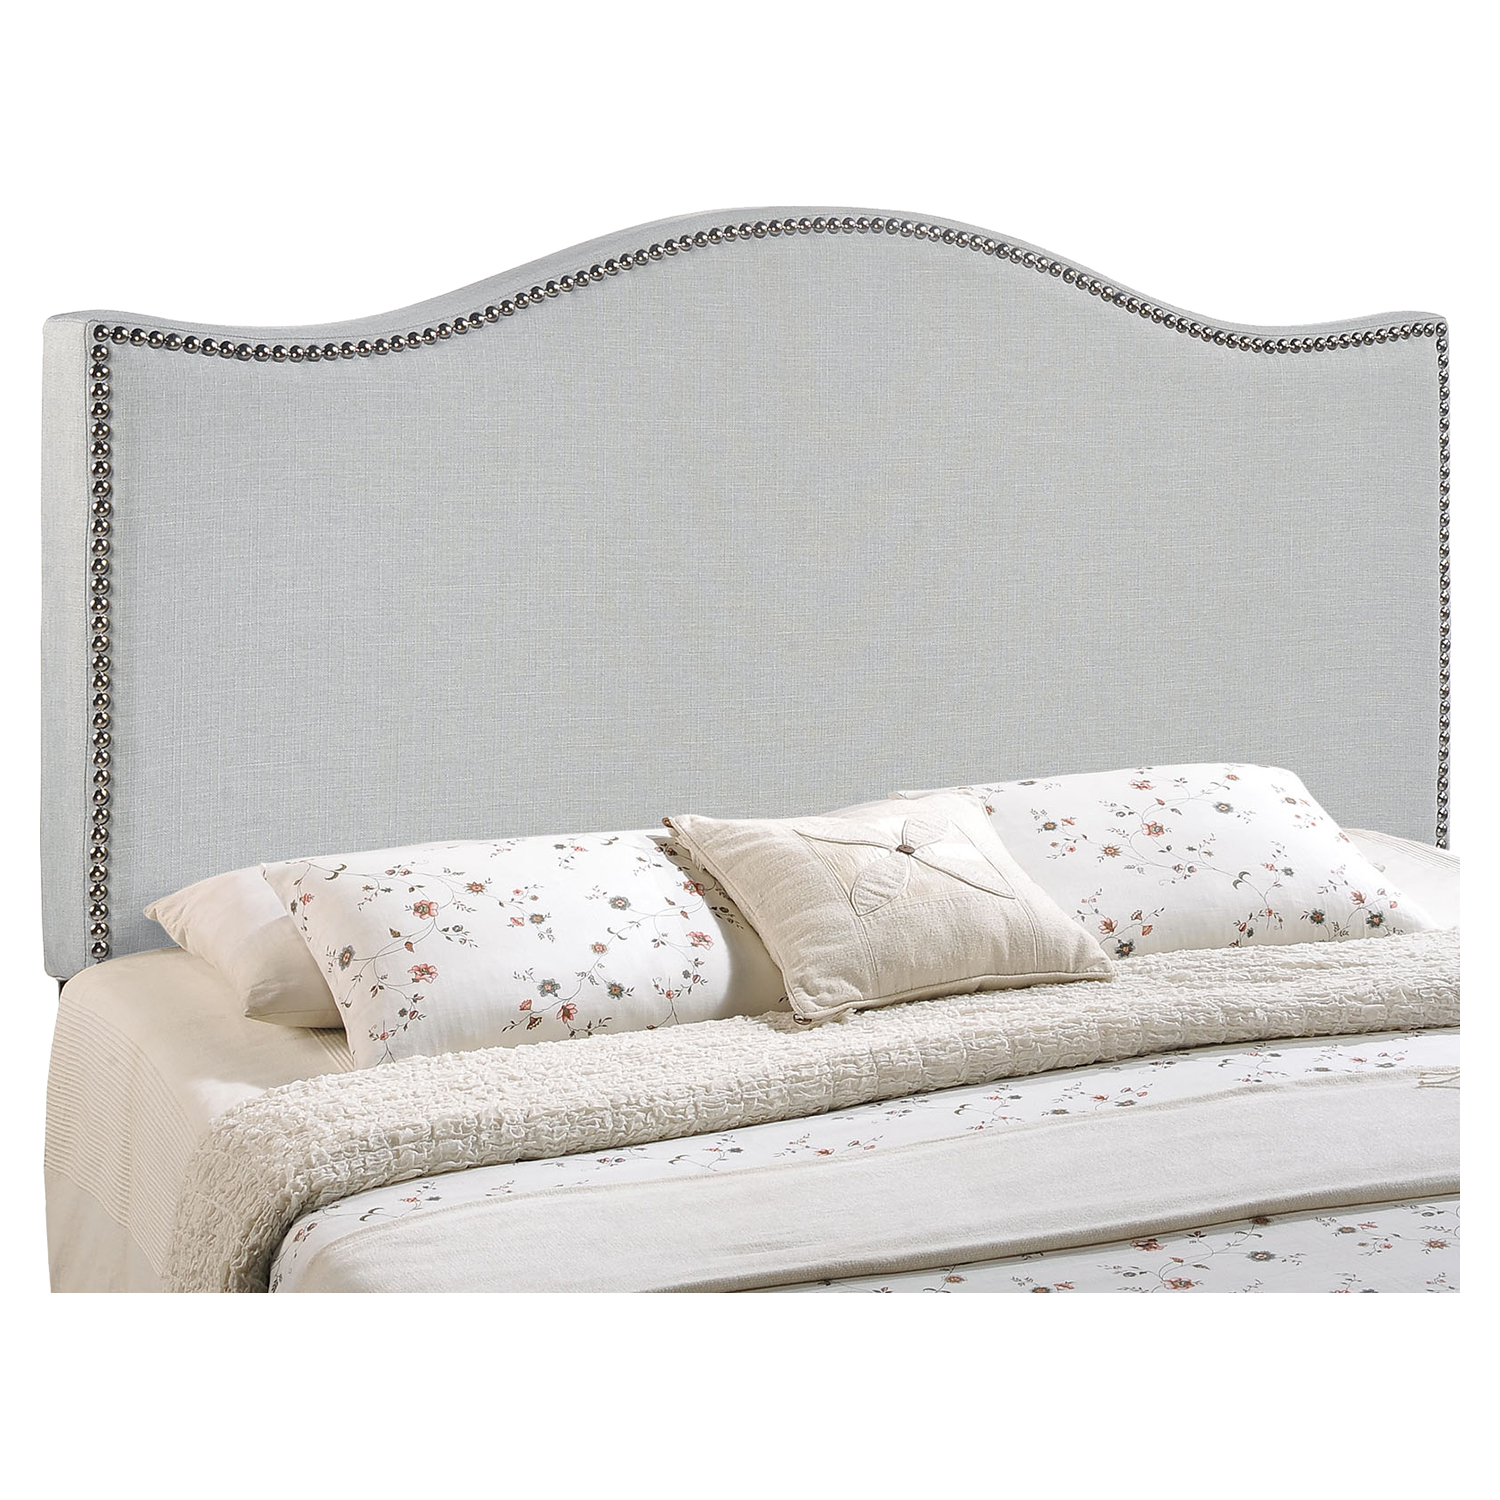 Curl Button Tufted Headboard - Sky Gray - EEI-MOD-520-GRY